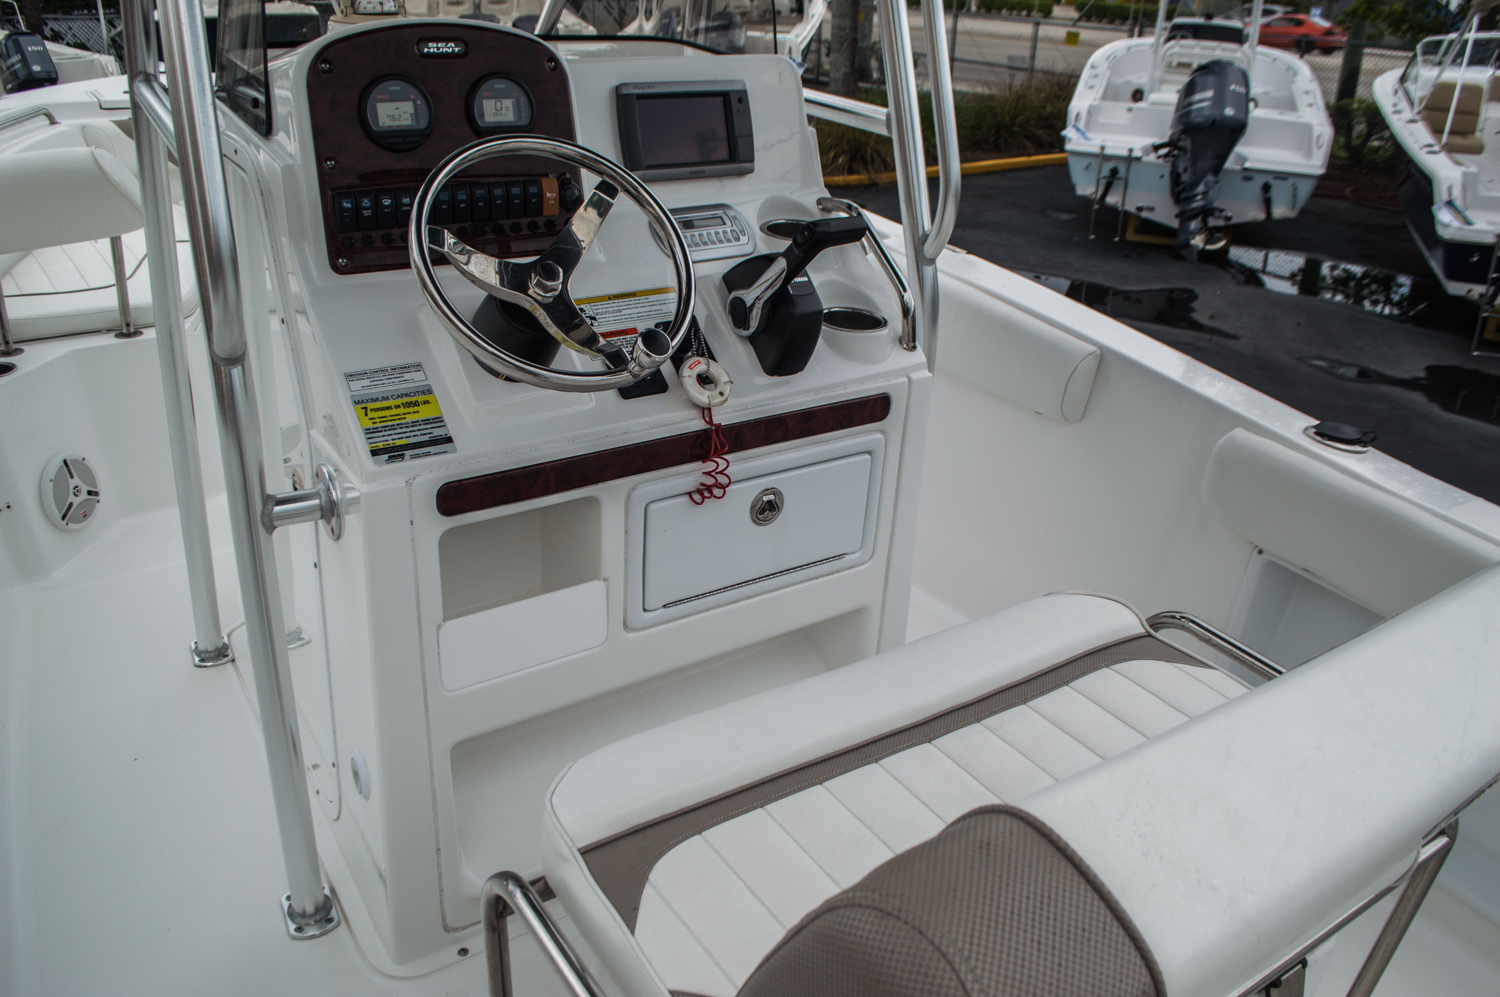 Thumbnail 25 for Used 2012 Sea Hunt 211 Ultra boat for sale in West Palm Beach, FL